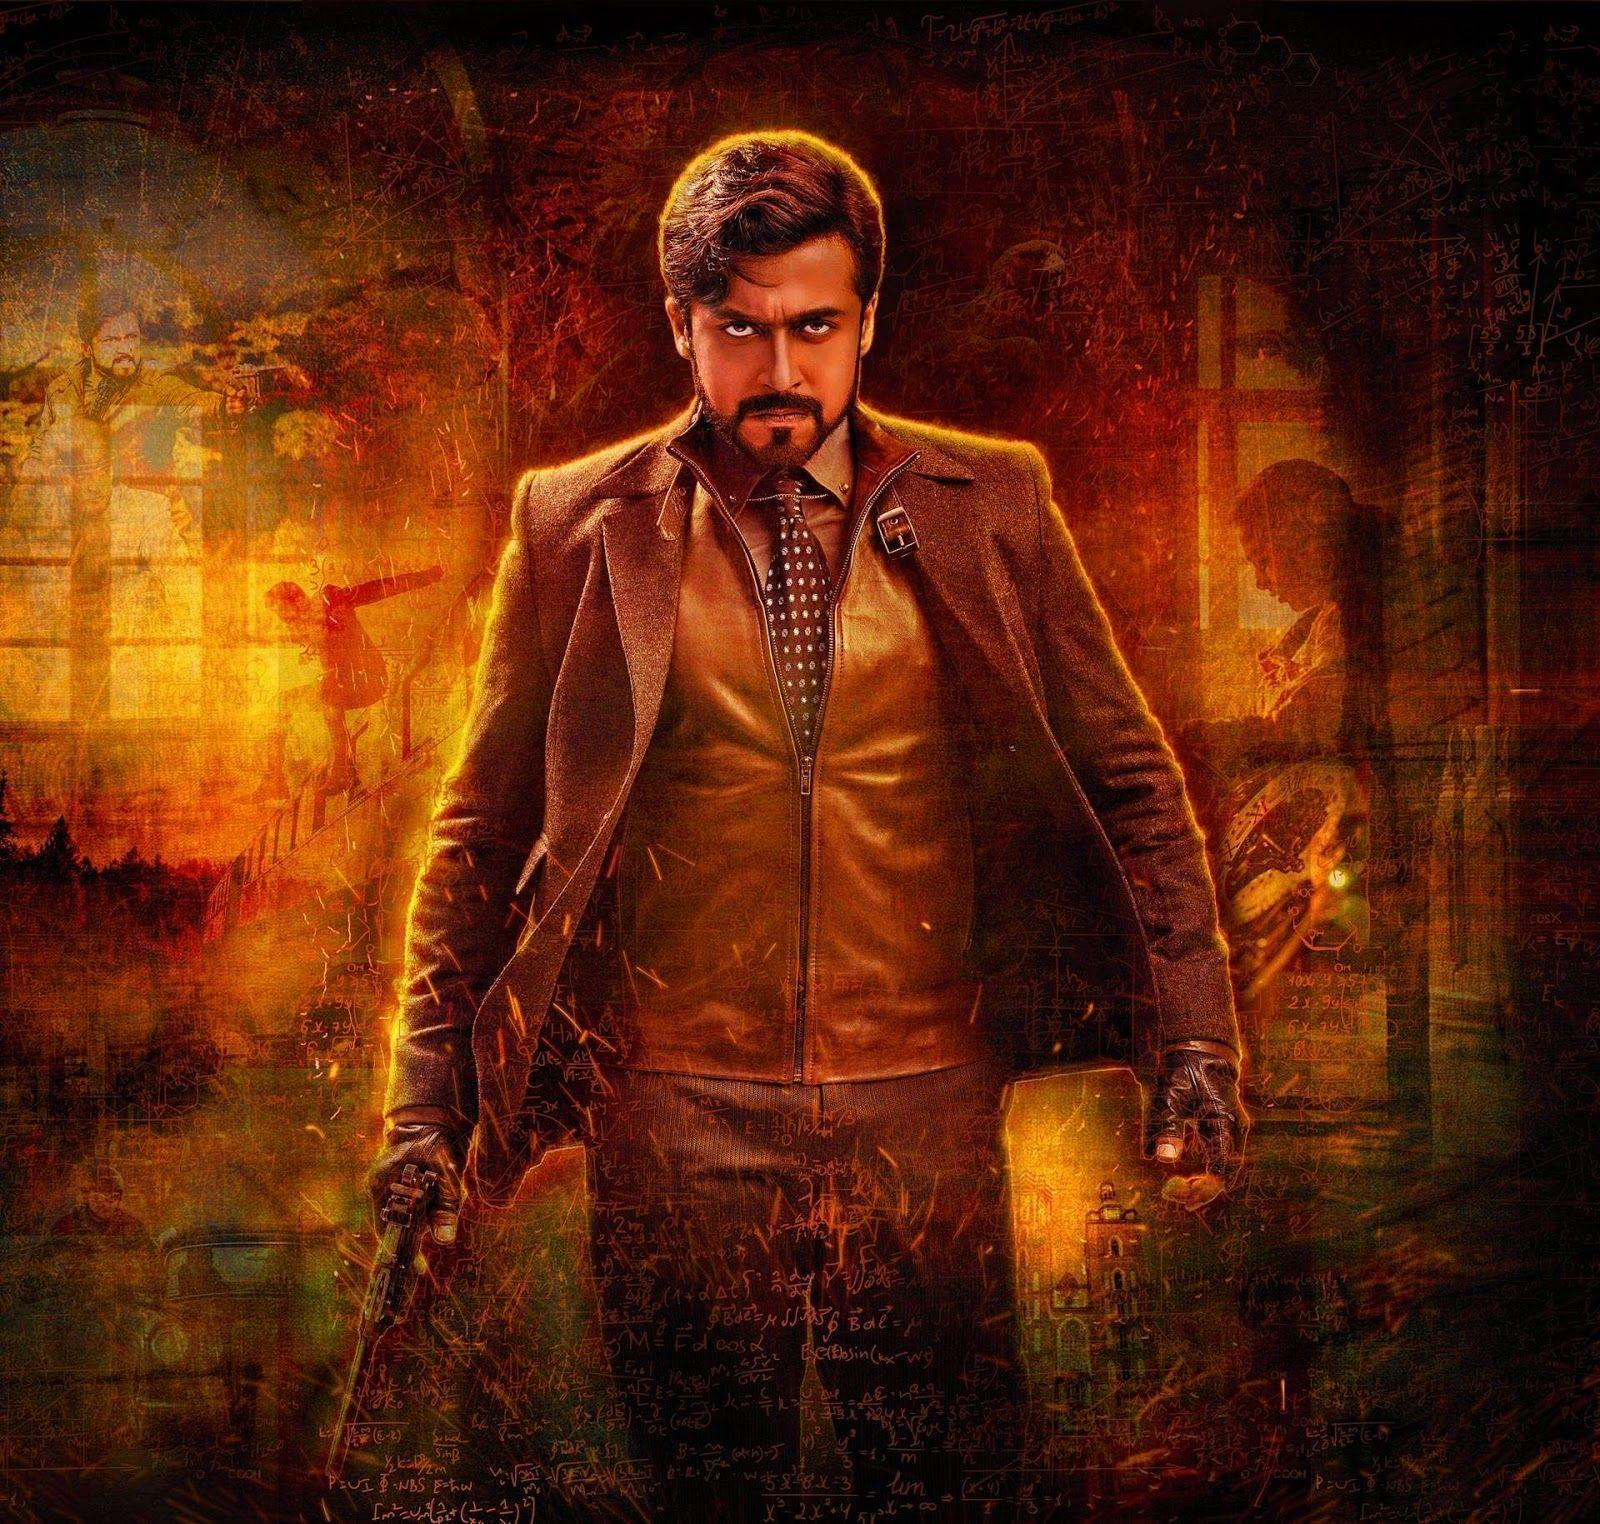 Surya hd wallpapers 2016 wallpaper cave surya all about surya only about surya 24 the movie hd wallpapers thecheapjerseys Choice Image